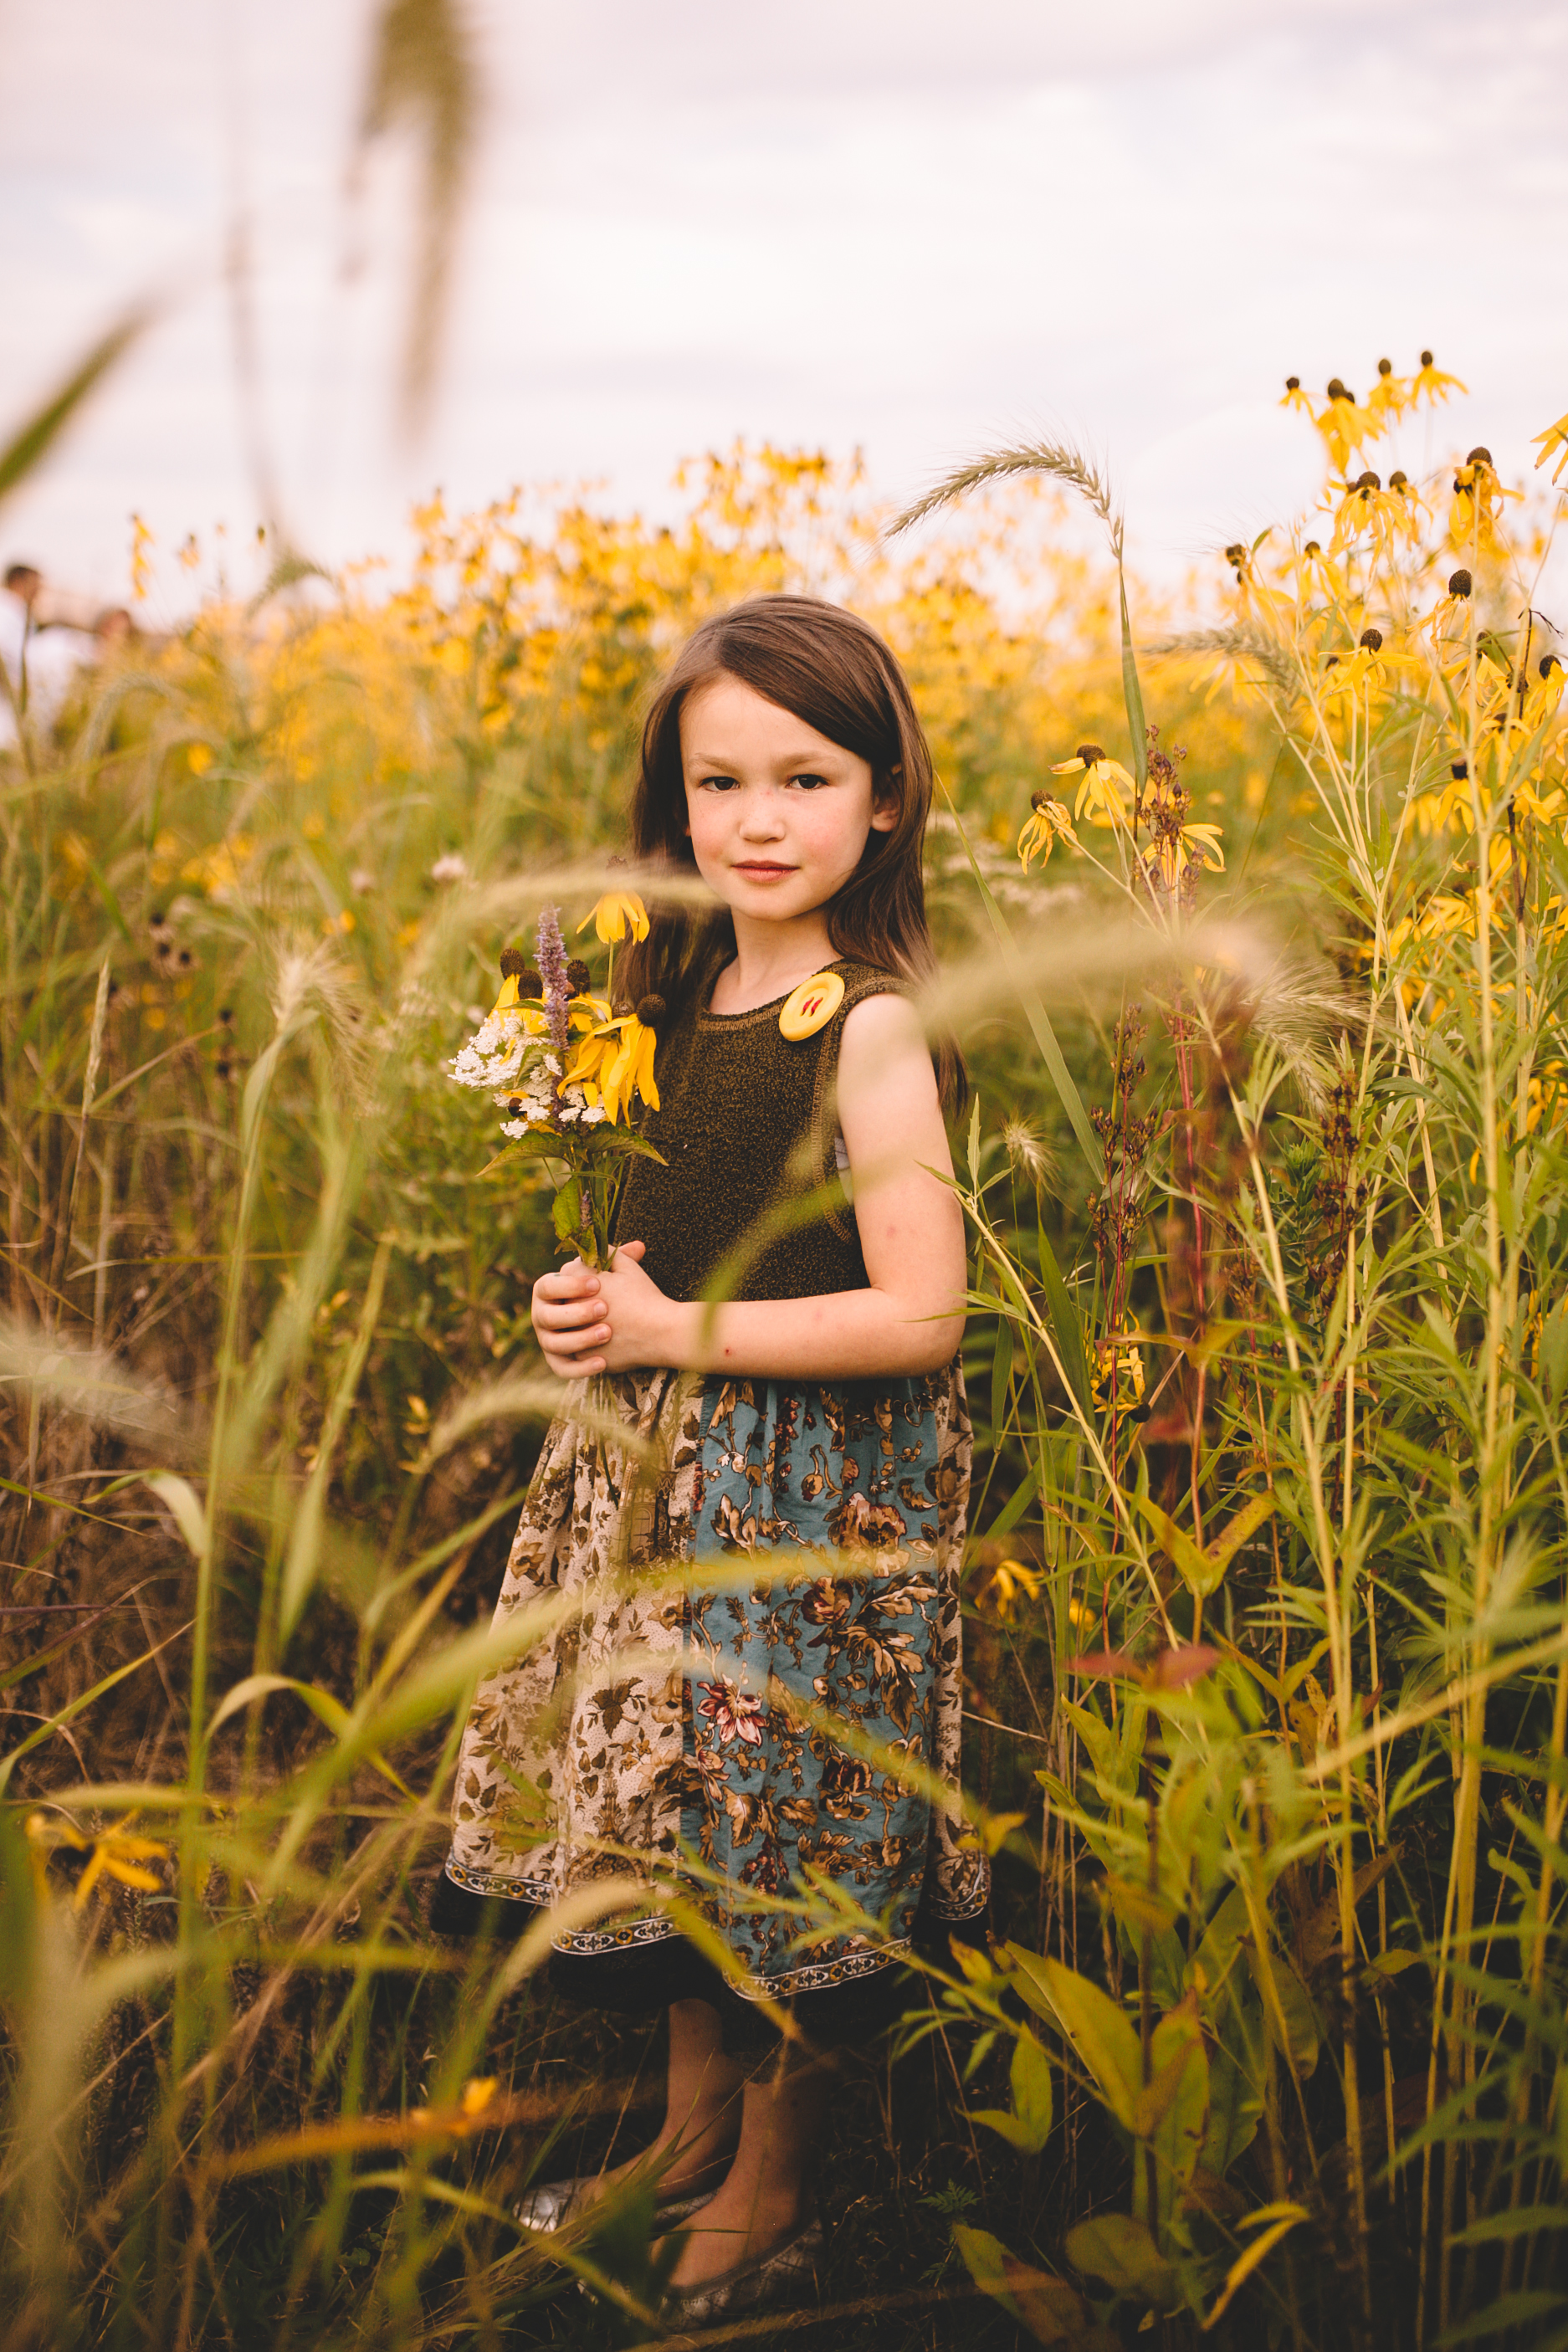 Golden Flower Field Mini Session Indianapolis IN (28 of 58).jpg